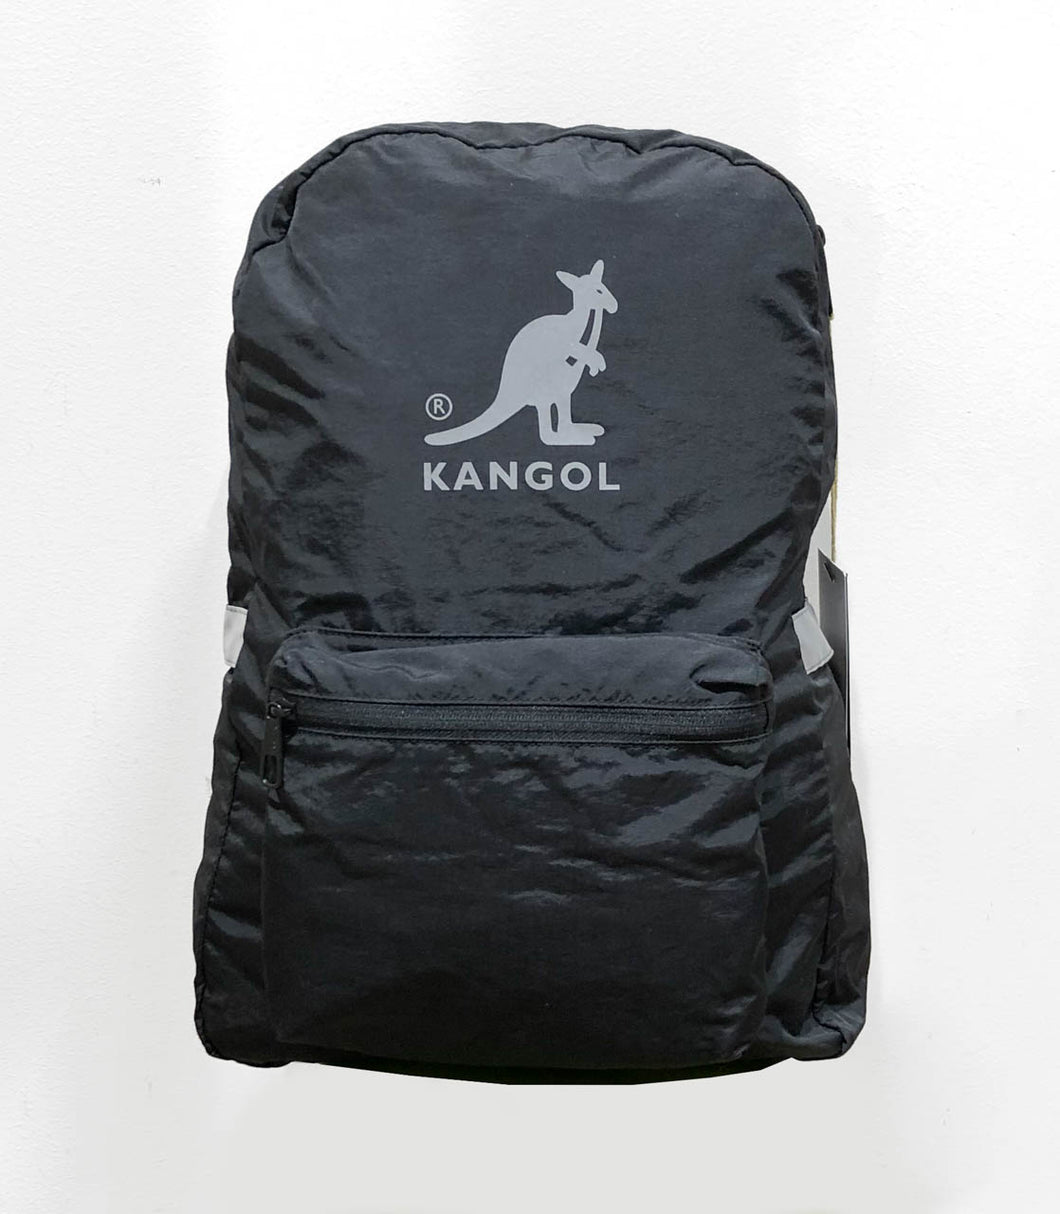 Zaino leggero Kangol in Nylon Keper packable